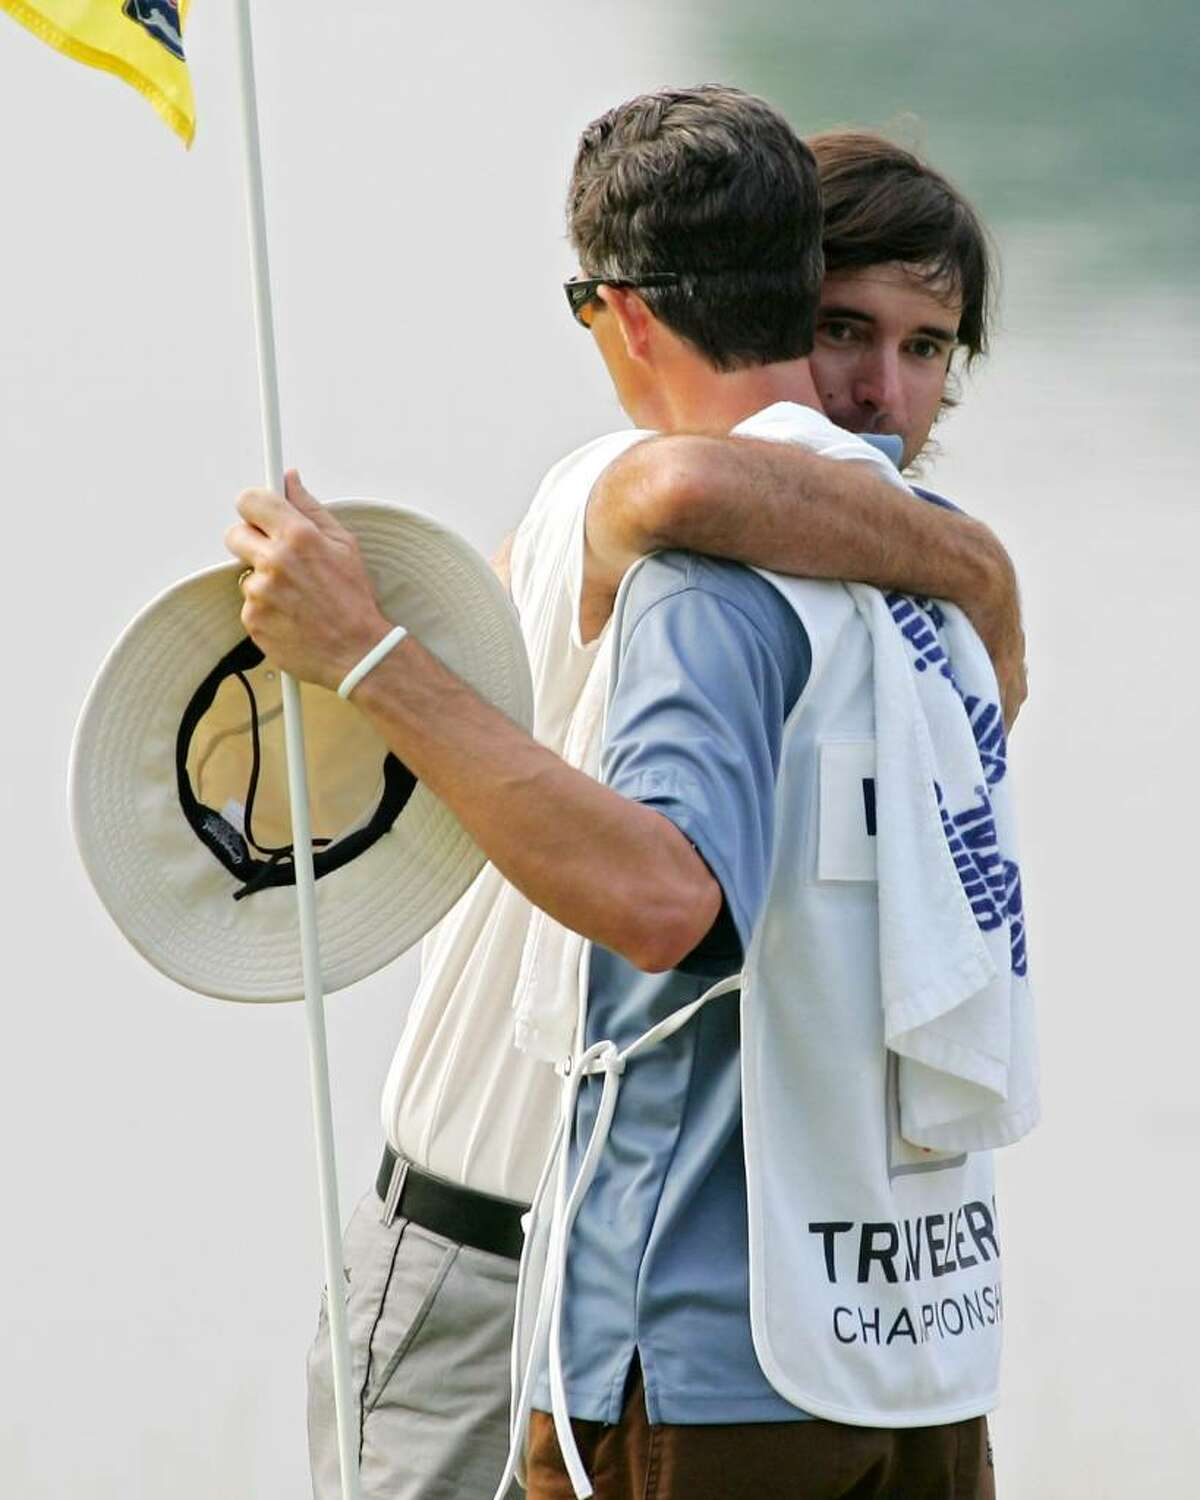 CROMWELL, CT - JUNE 27: Bubba Watson embraces his caddie, Ted Scott, after winning a two-hole playoff after the final round of the Travelers Championship held at TPC River Highlands on June 27, 2010 in Cromwell, Connecticut. (Photo by Michael Cohen/Getty Images) *** Local Caption *** Bubba Watson;Ted Scott